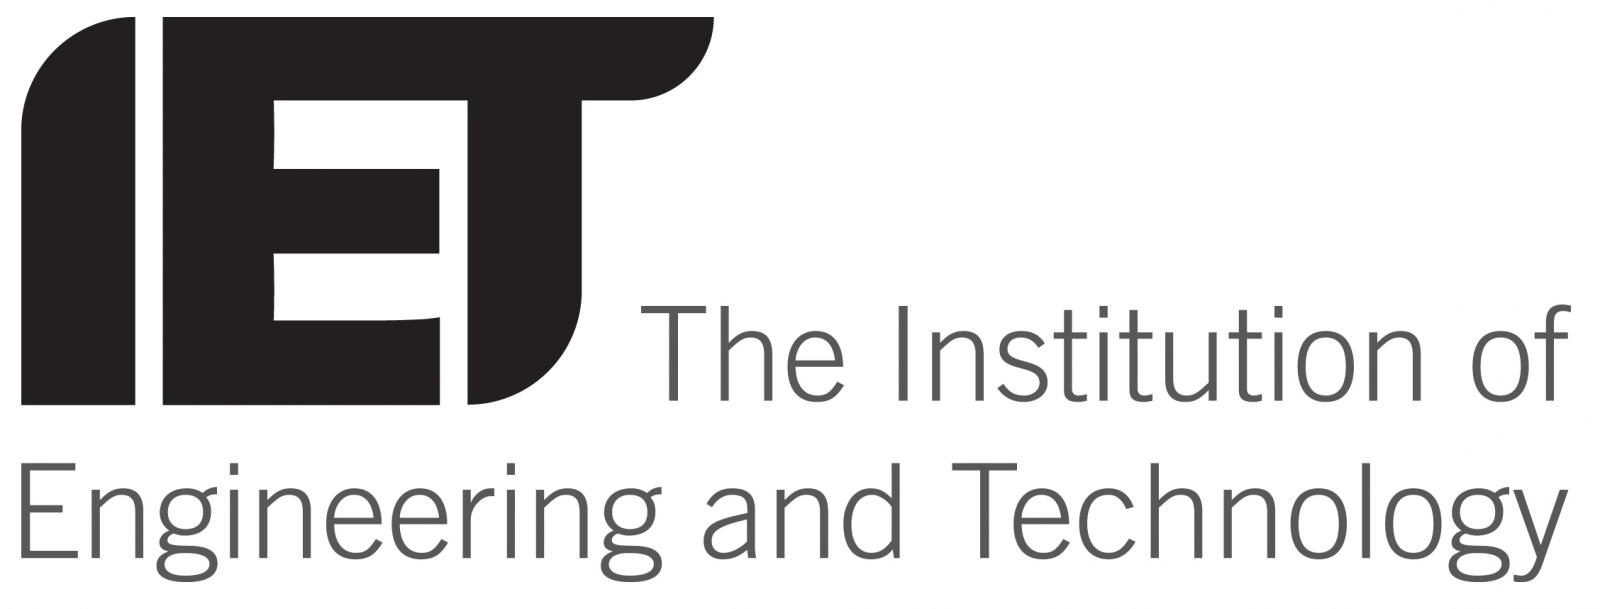 Institution of Engineering and Technology logo